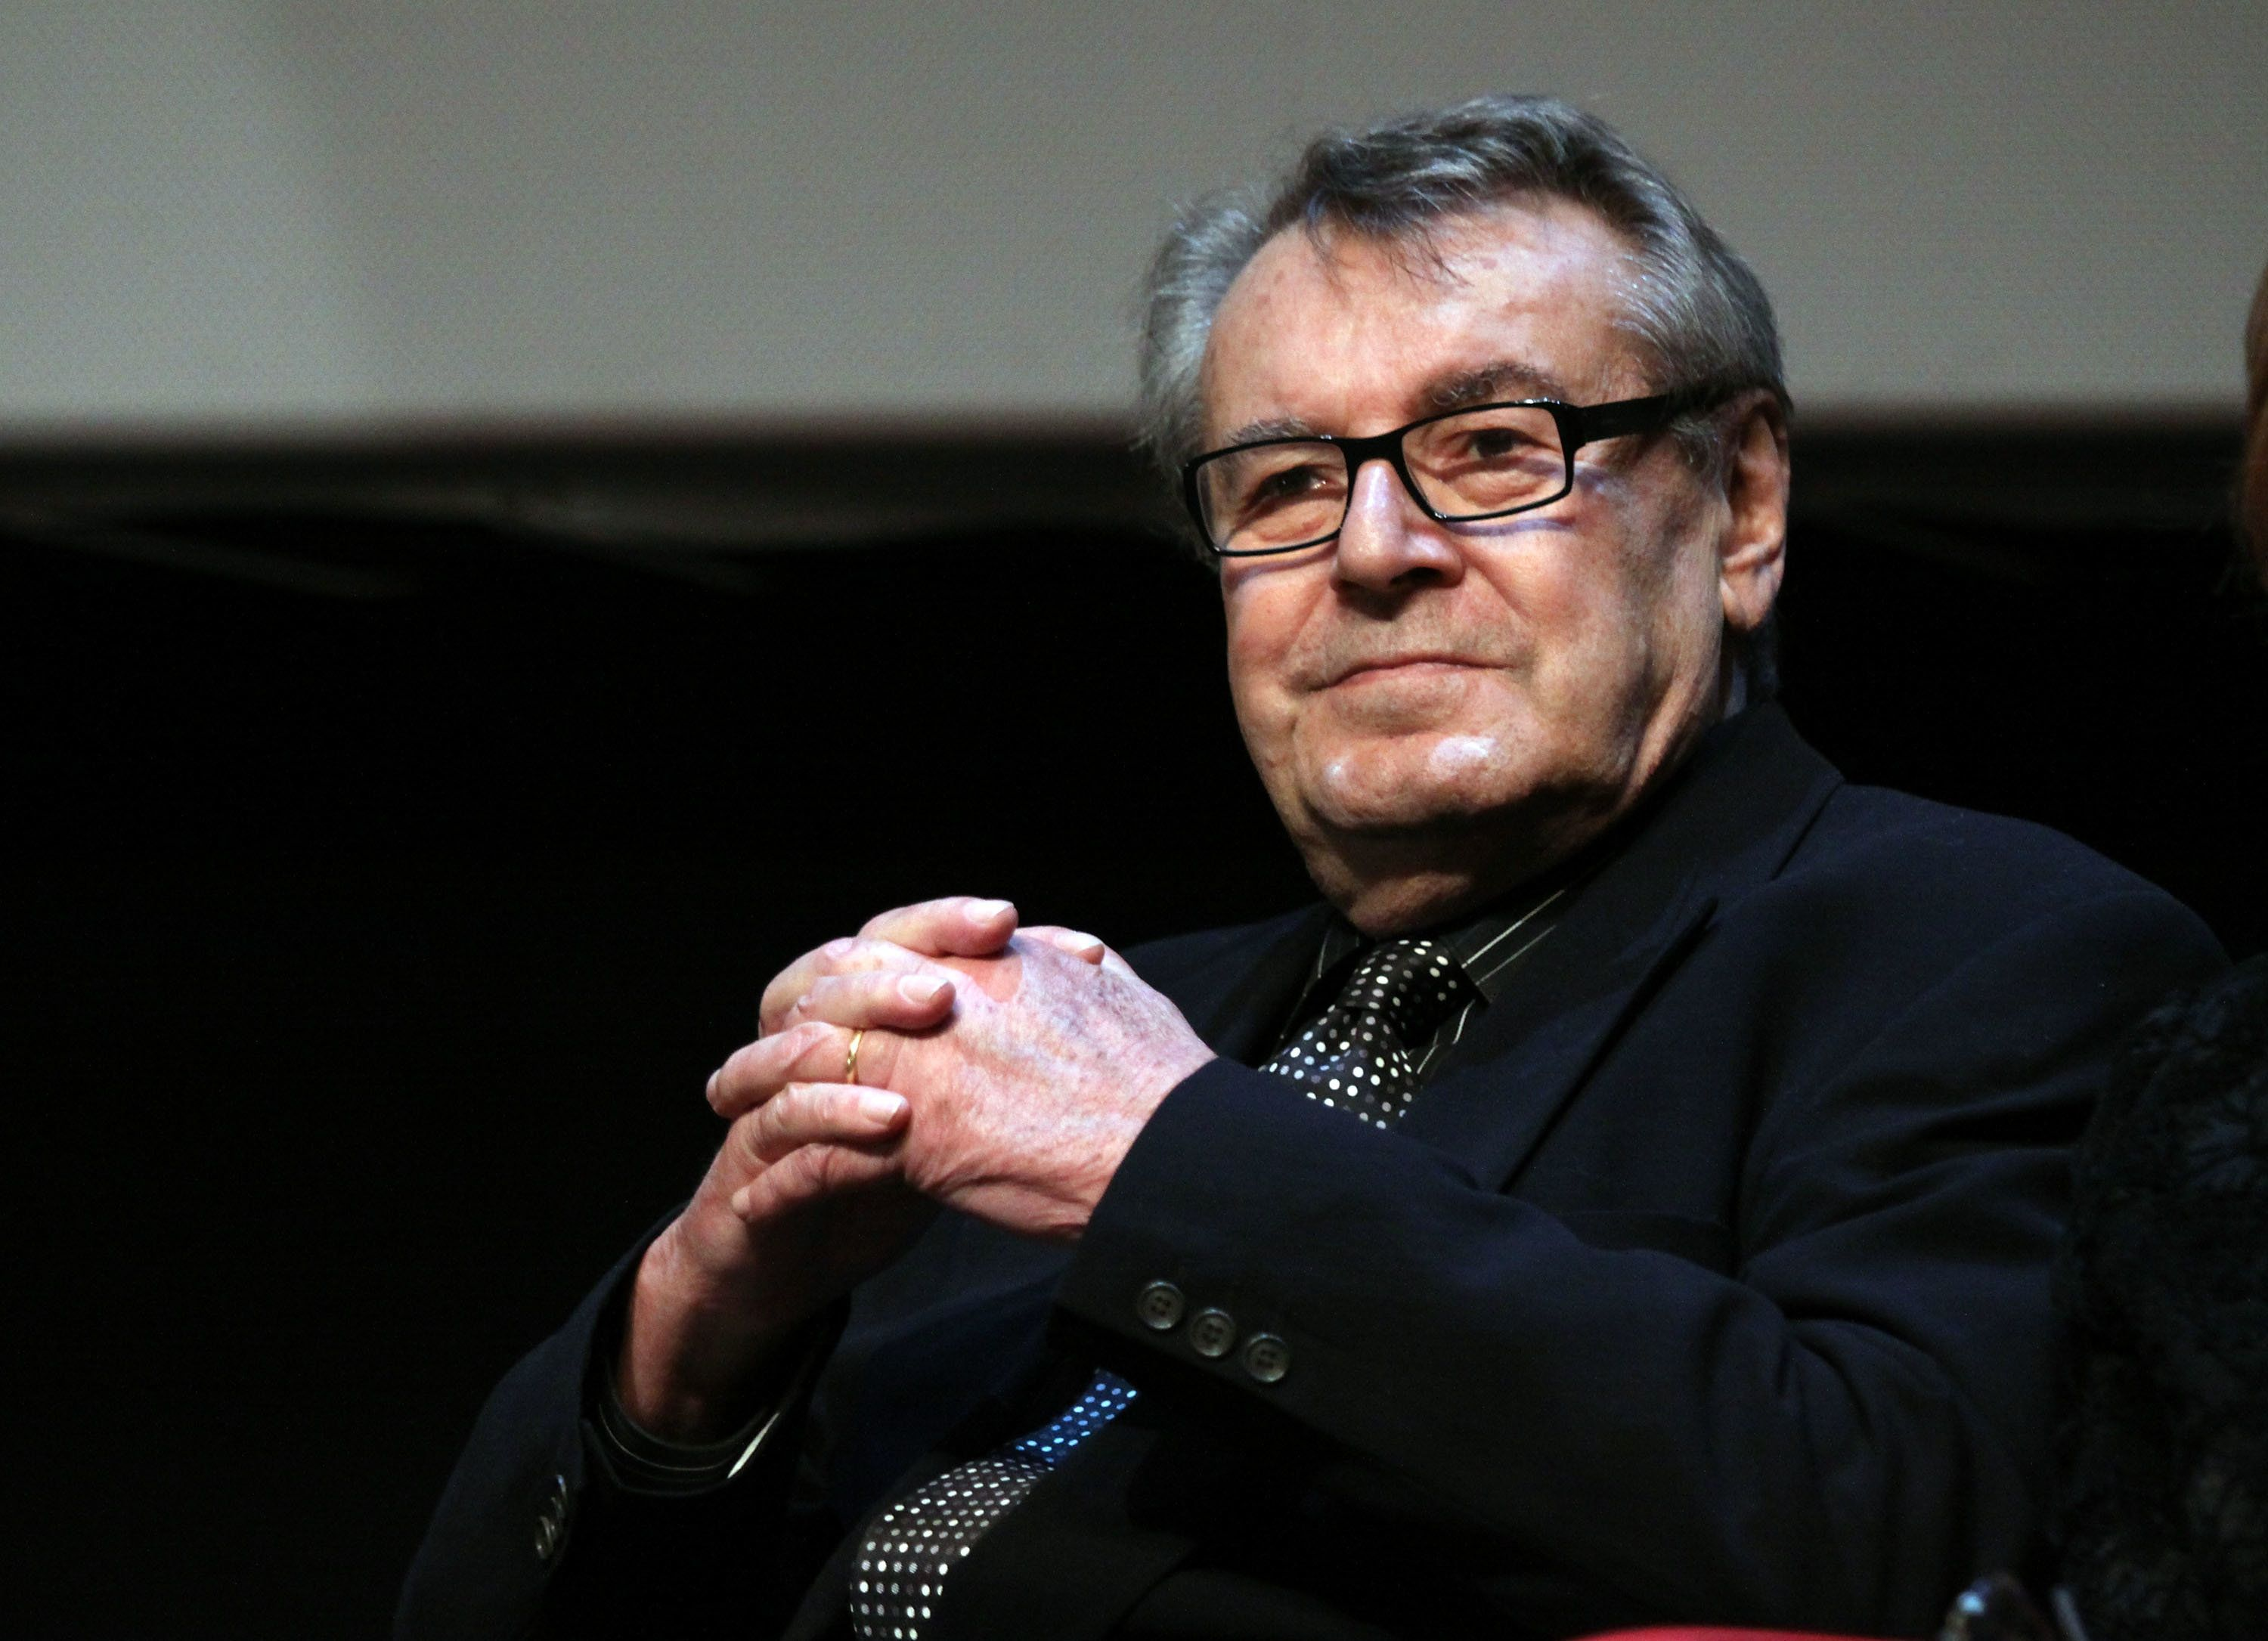 ROME - OCTOBER 23:  Jury President Milos Forman attends the Official Awards Ceremony on Day 9 of the 4th International Rome Film Festival held at the Auditorium Parco della Musica on October 23, 2009 in Rome, Italy.  (Photo by Ernesto Ruscio/Getty Images)